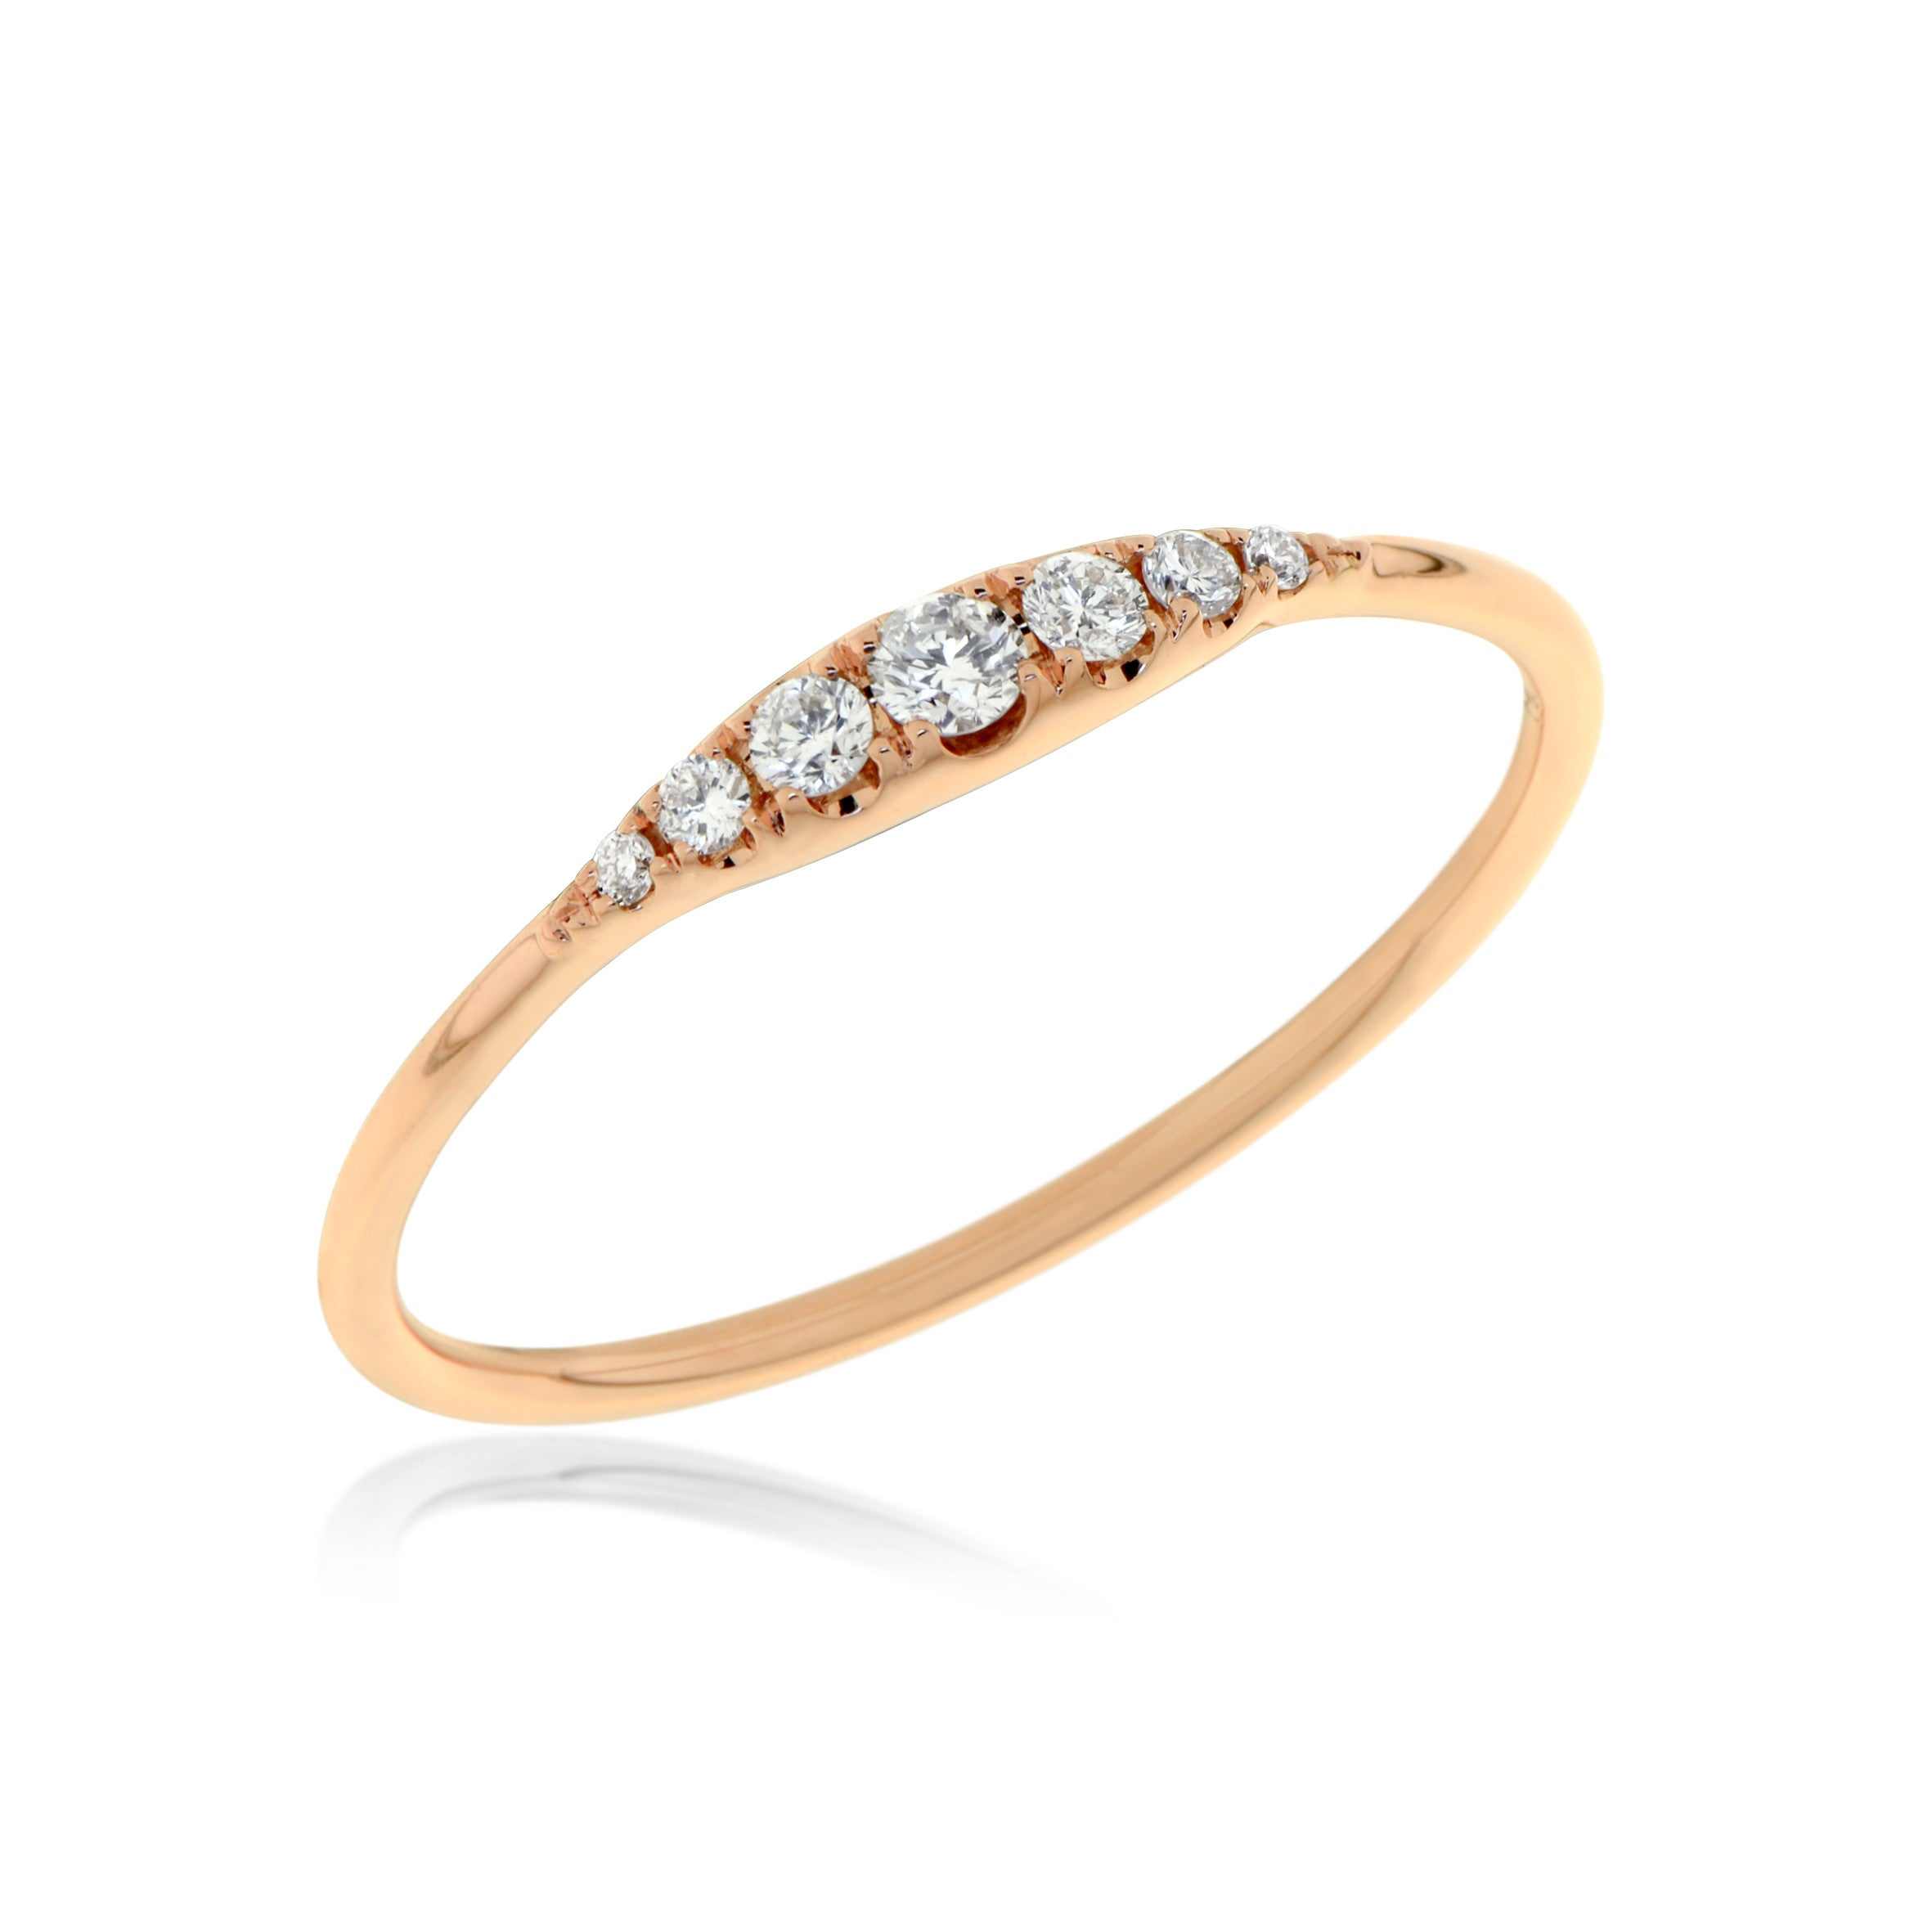 OURIRE Band Ring , Rings - Fine Jewelry, RoCHIC, RoCHIC Fine Jewelry